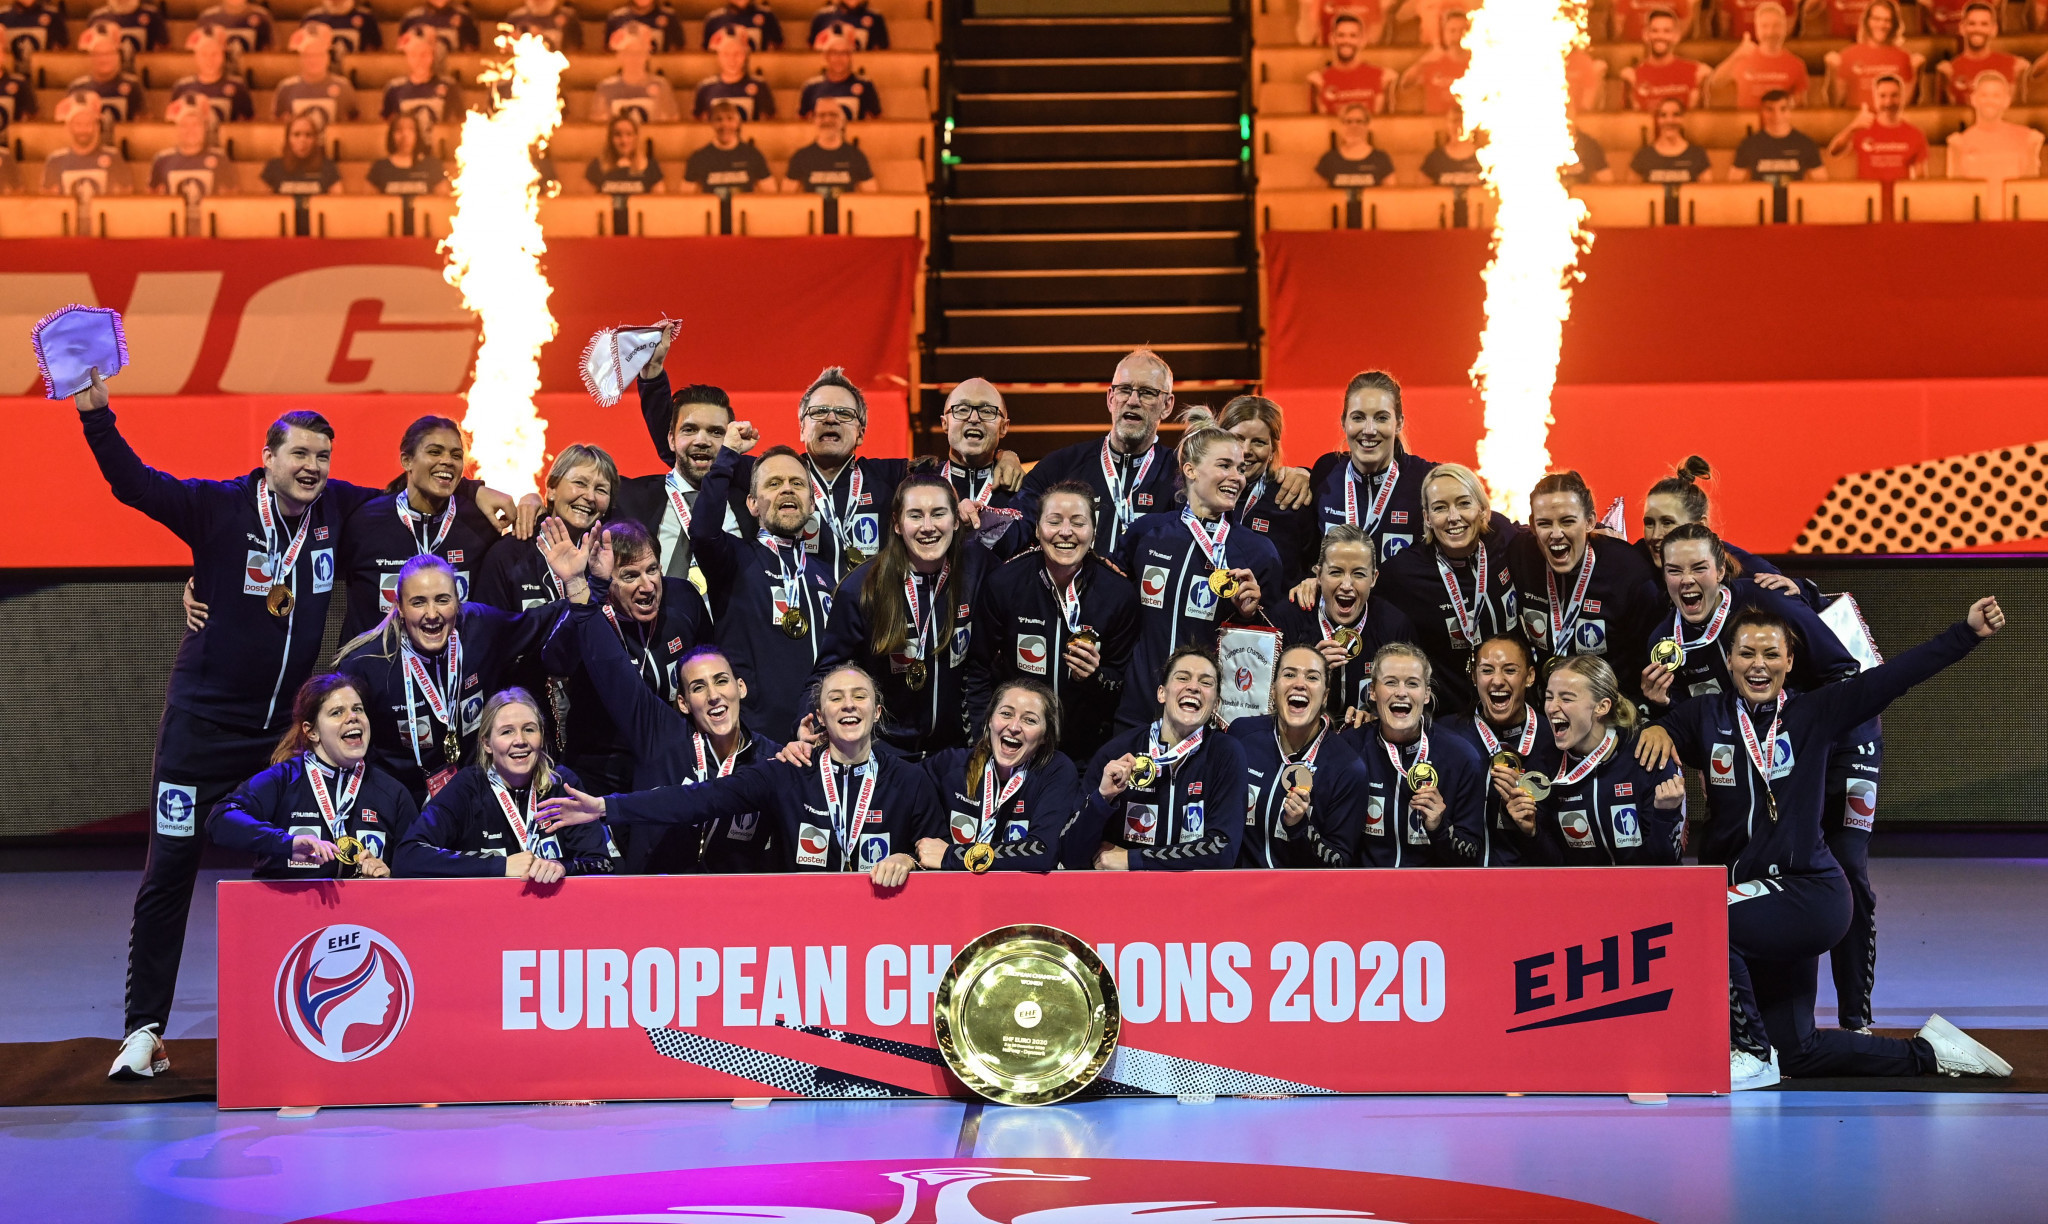 Norway won the Women's European Handball Championships for the eighth time in 2020 ©Getty Images